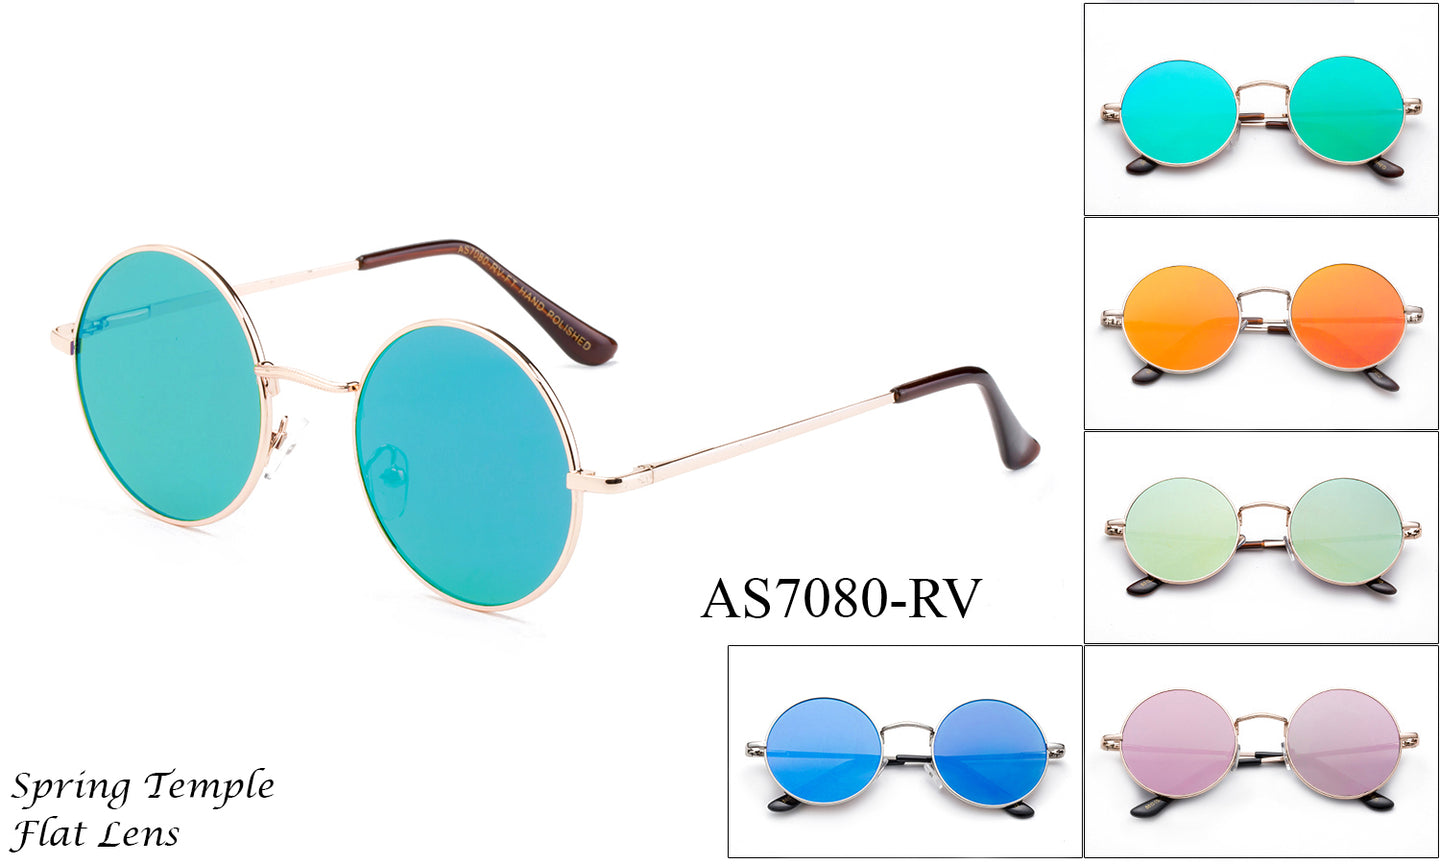 Metal Unisex Retro Hipster Lennon Shades - AS7080-RV - BuyWholesaleSunglasses.com